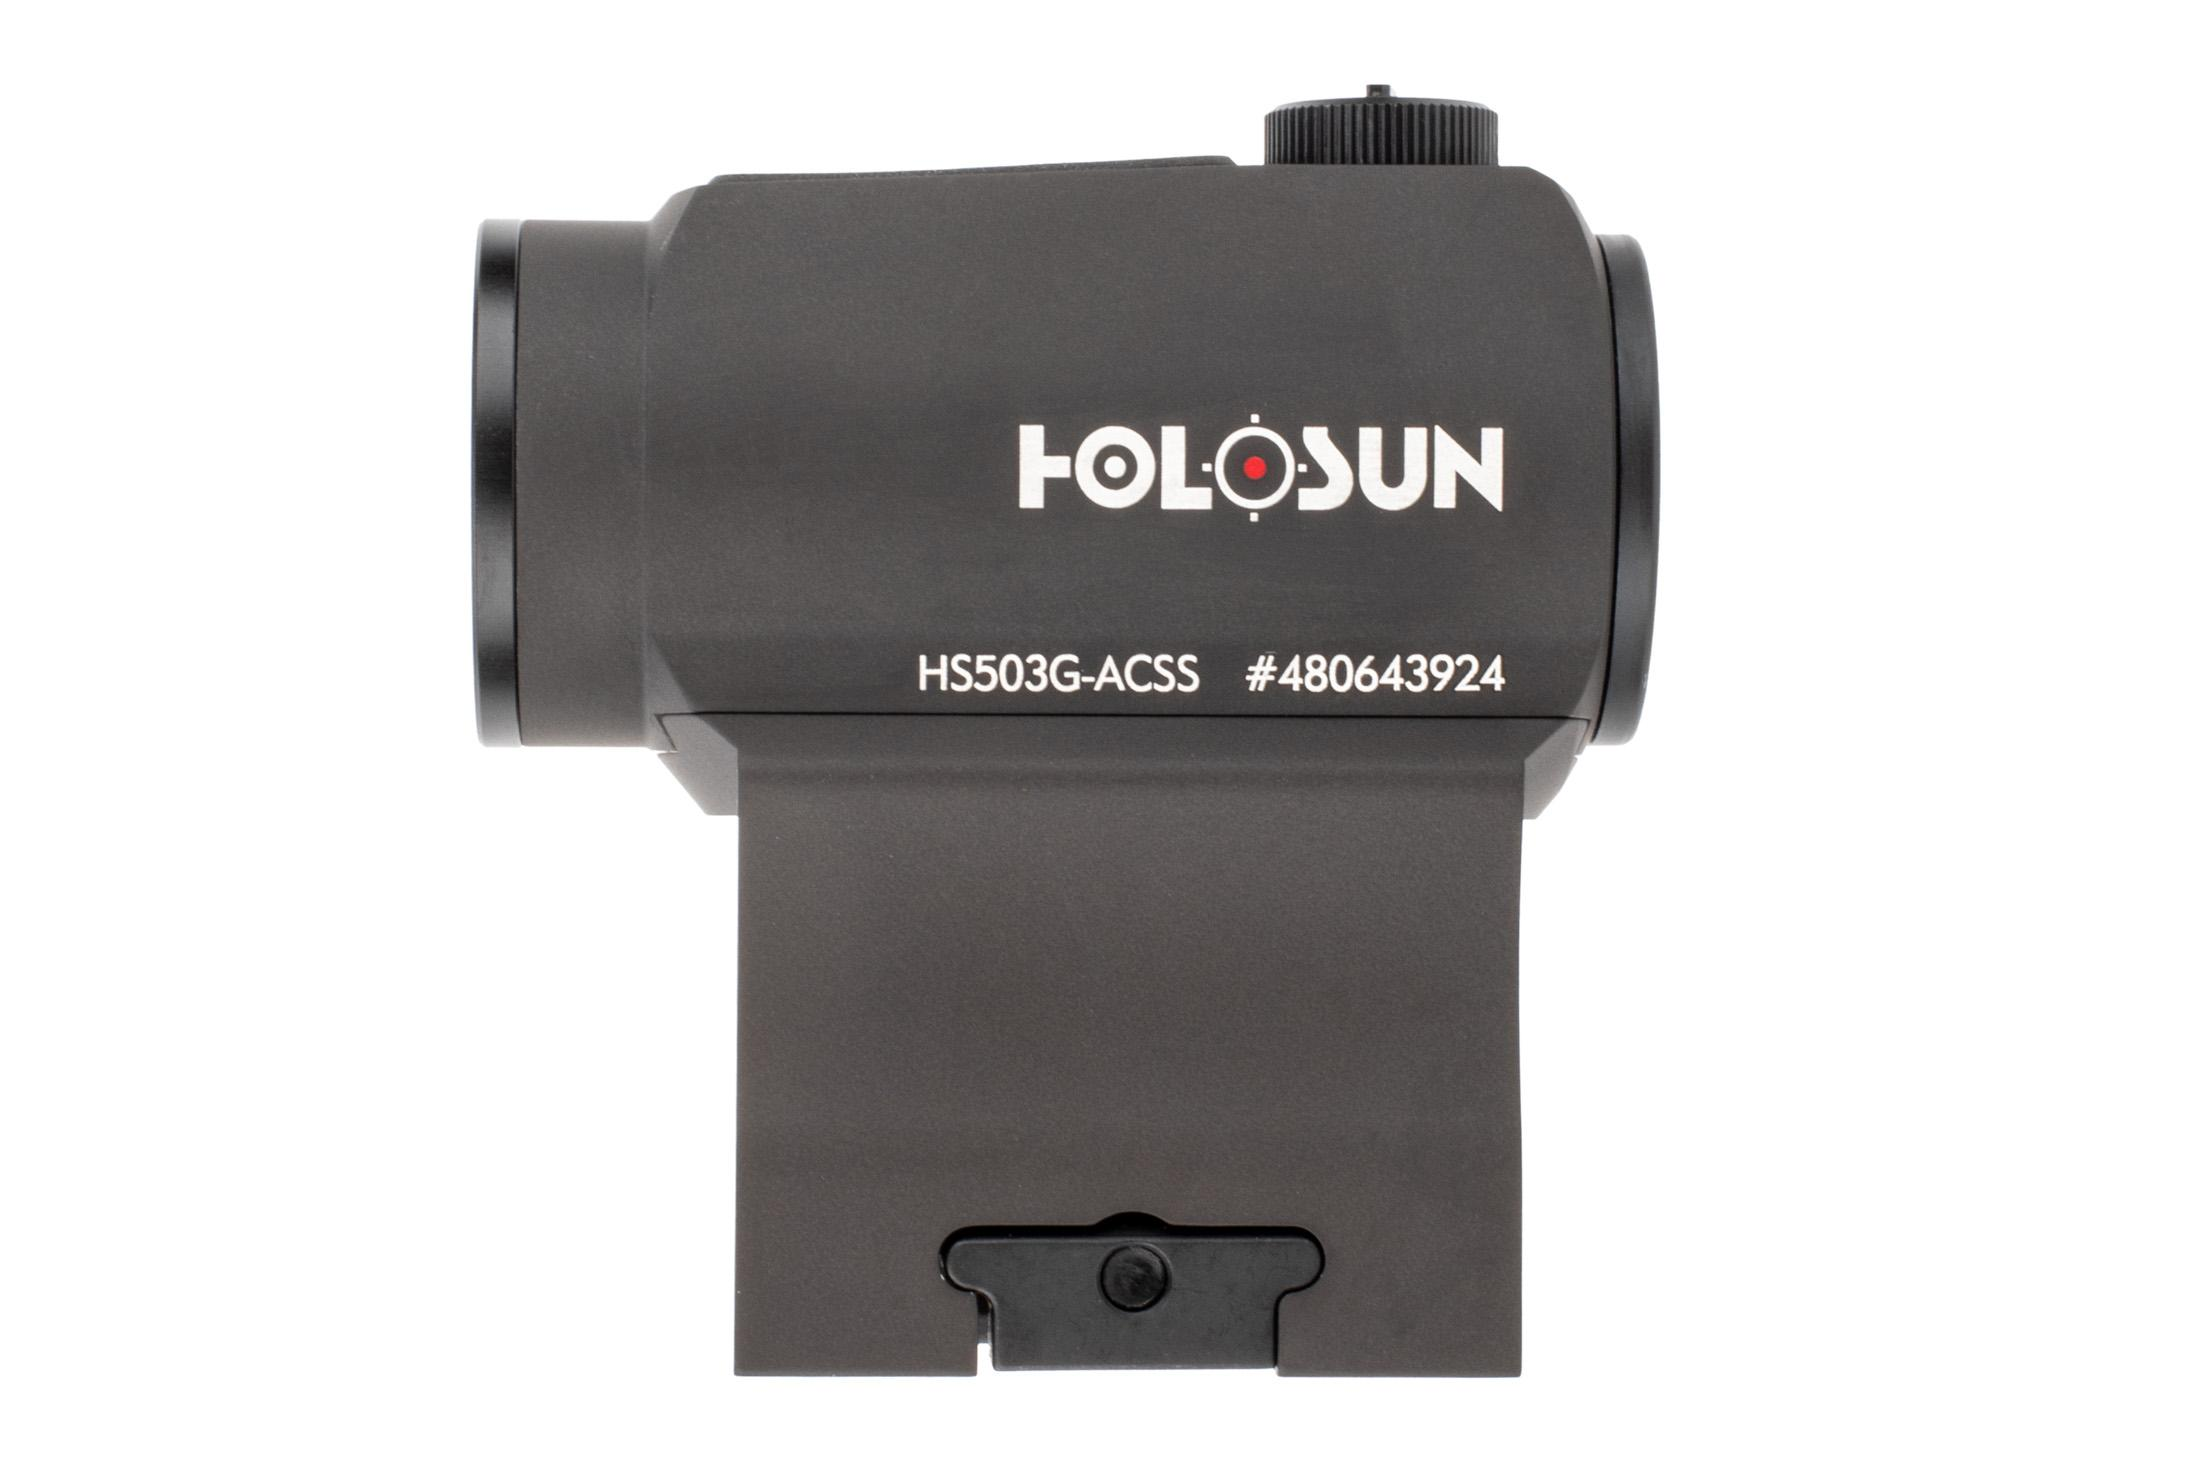 The ar15 red dot sight by holosun has 10 illumination settings